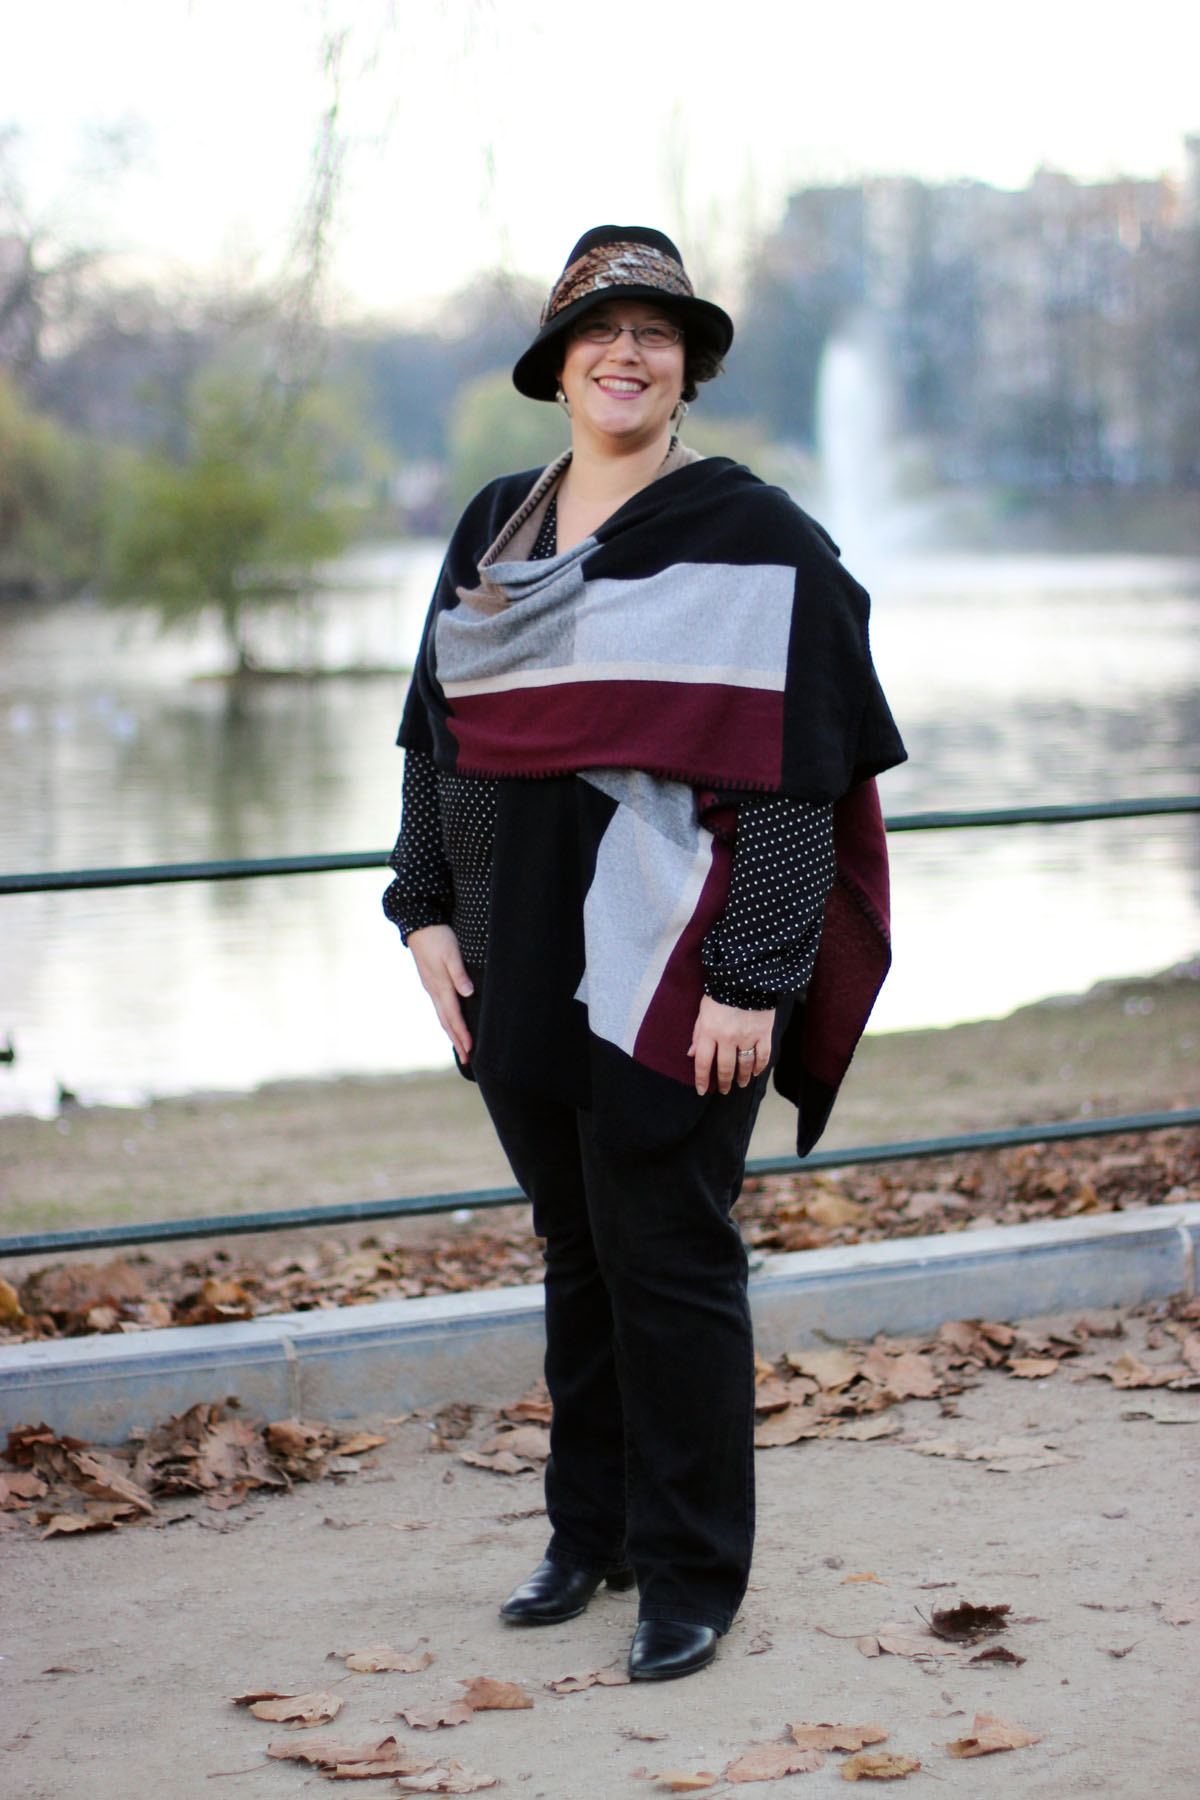 Sheila wearing a hat, shawl and black trousers.